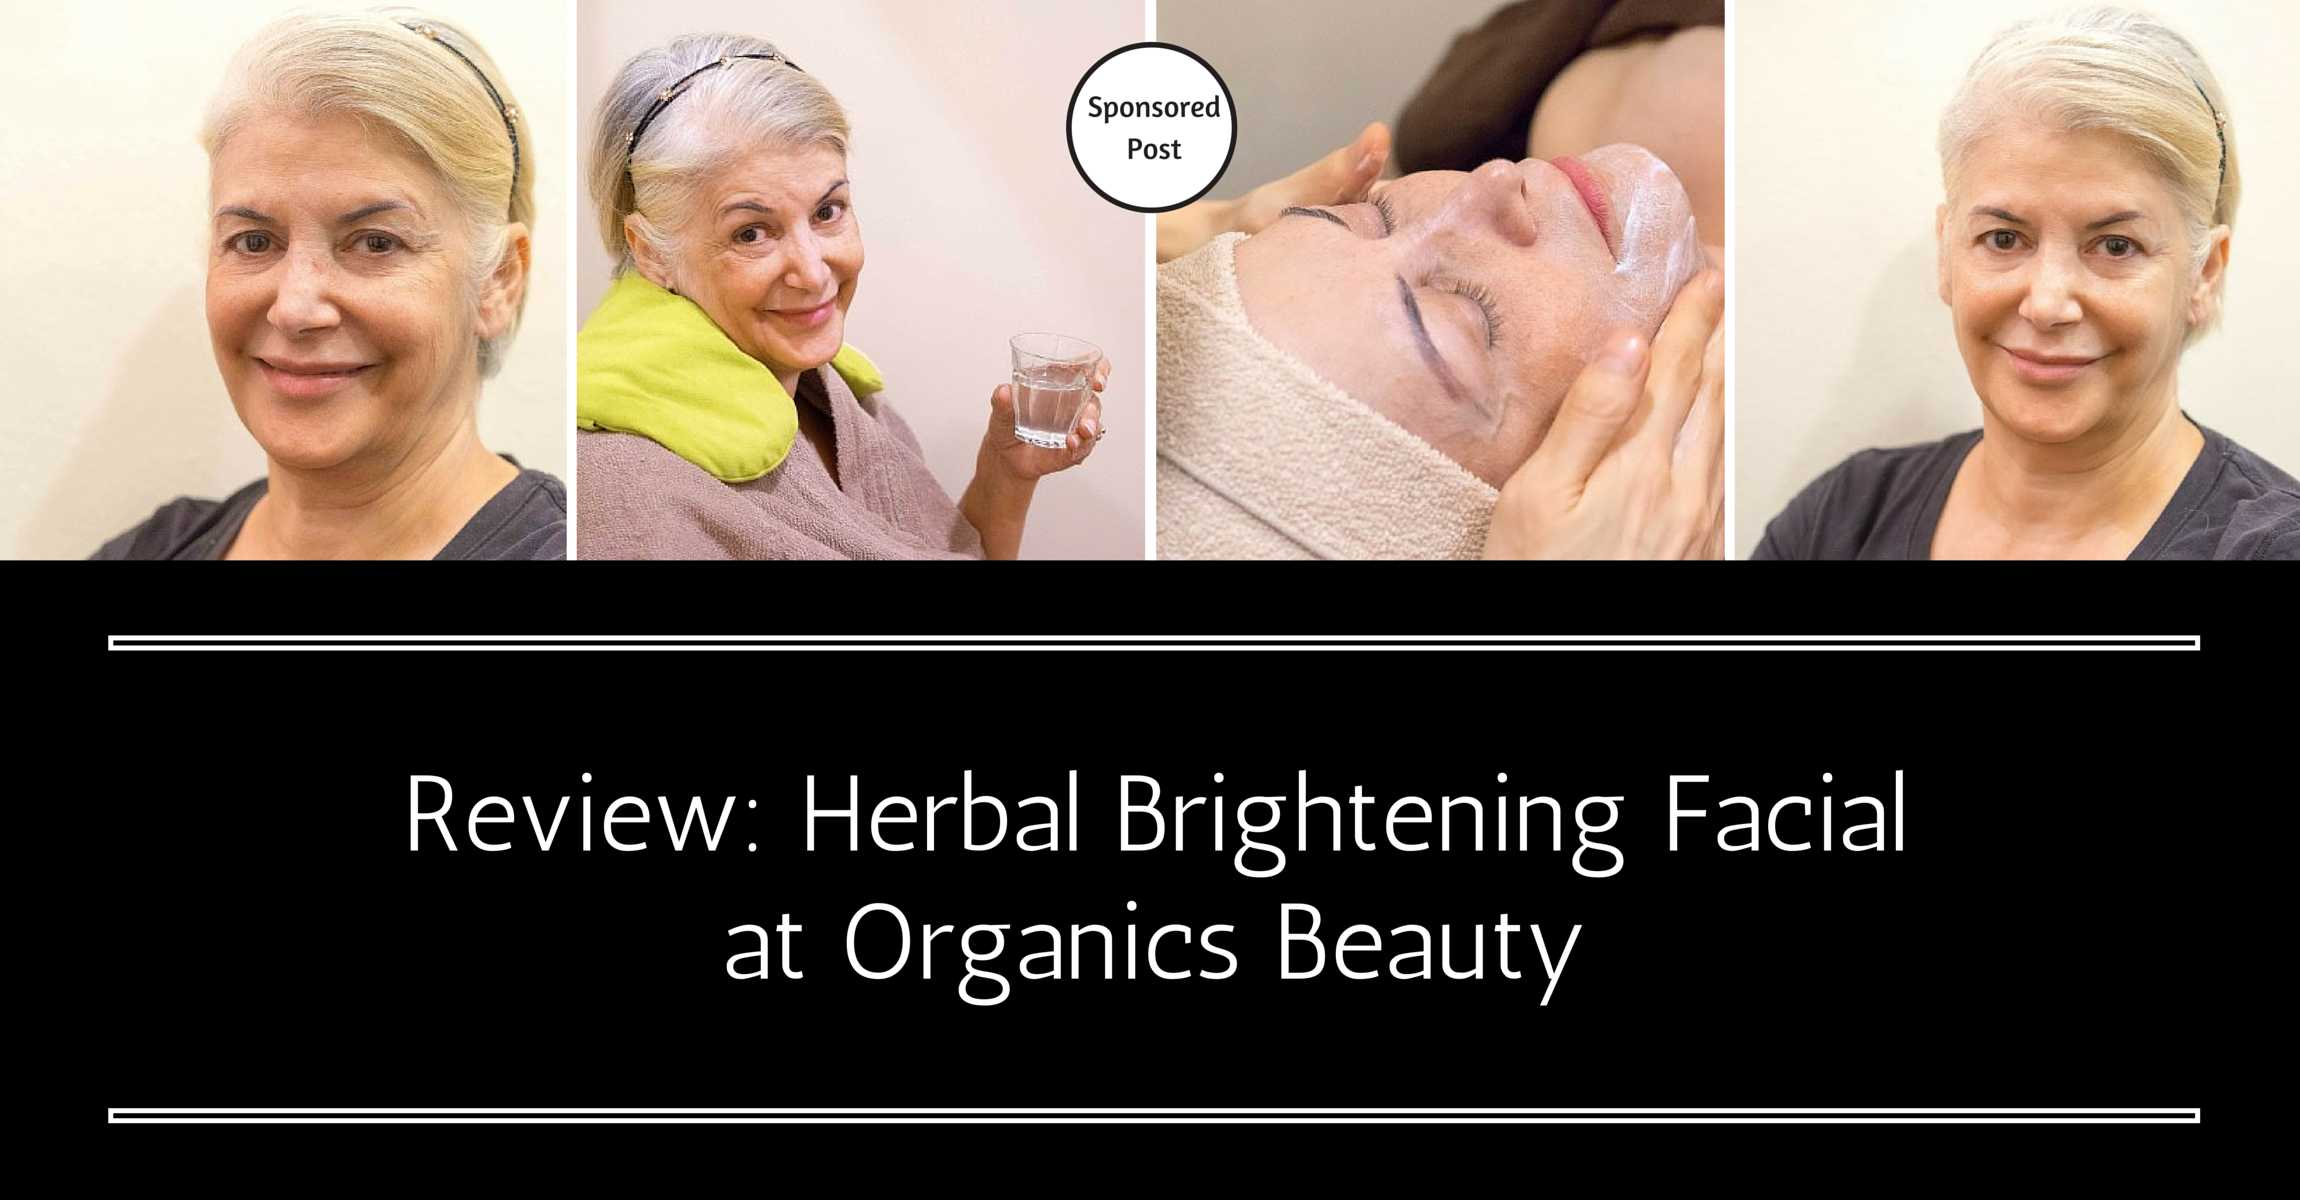 The Most Unique Organic Facial You've Never Seen or Experienced Before: Herbal Brightening at Japanese Salon Organics Facial